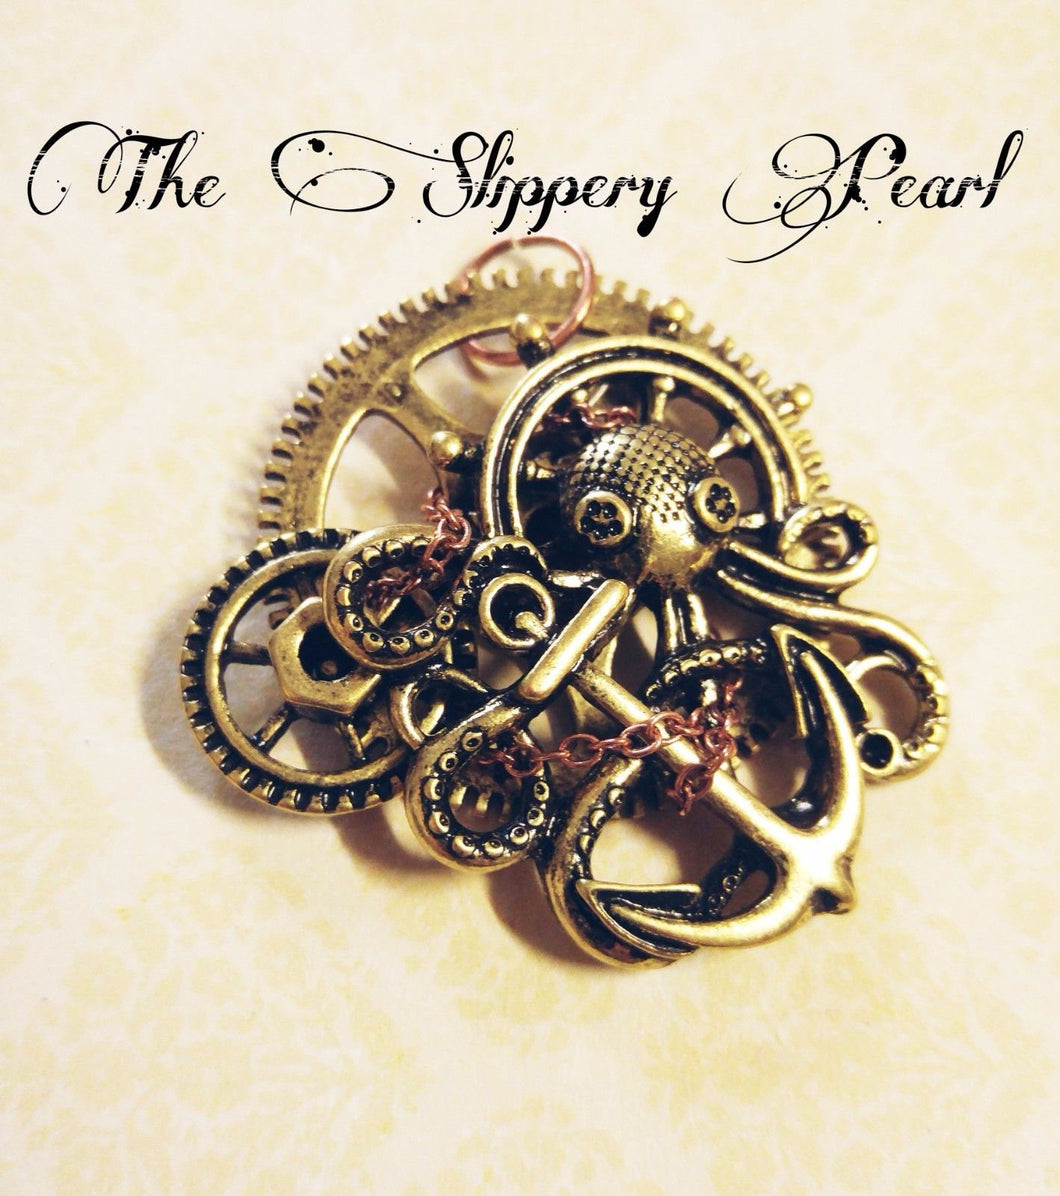 Large Octopus Pendant Octopus Charm Steampunk Octopus Large Octopus Charm Gold Octopus Metal Octopus Kraken Pendant Gold Pendant Gear